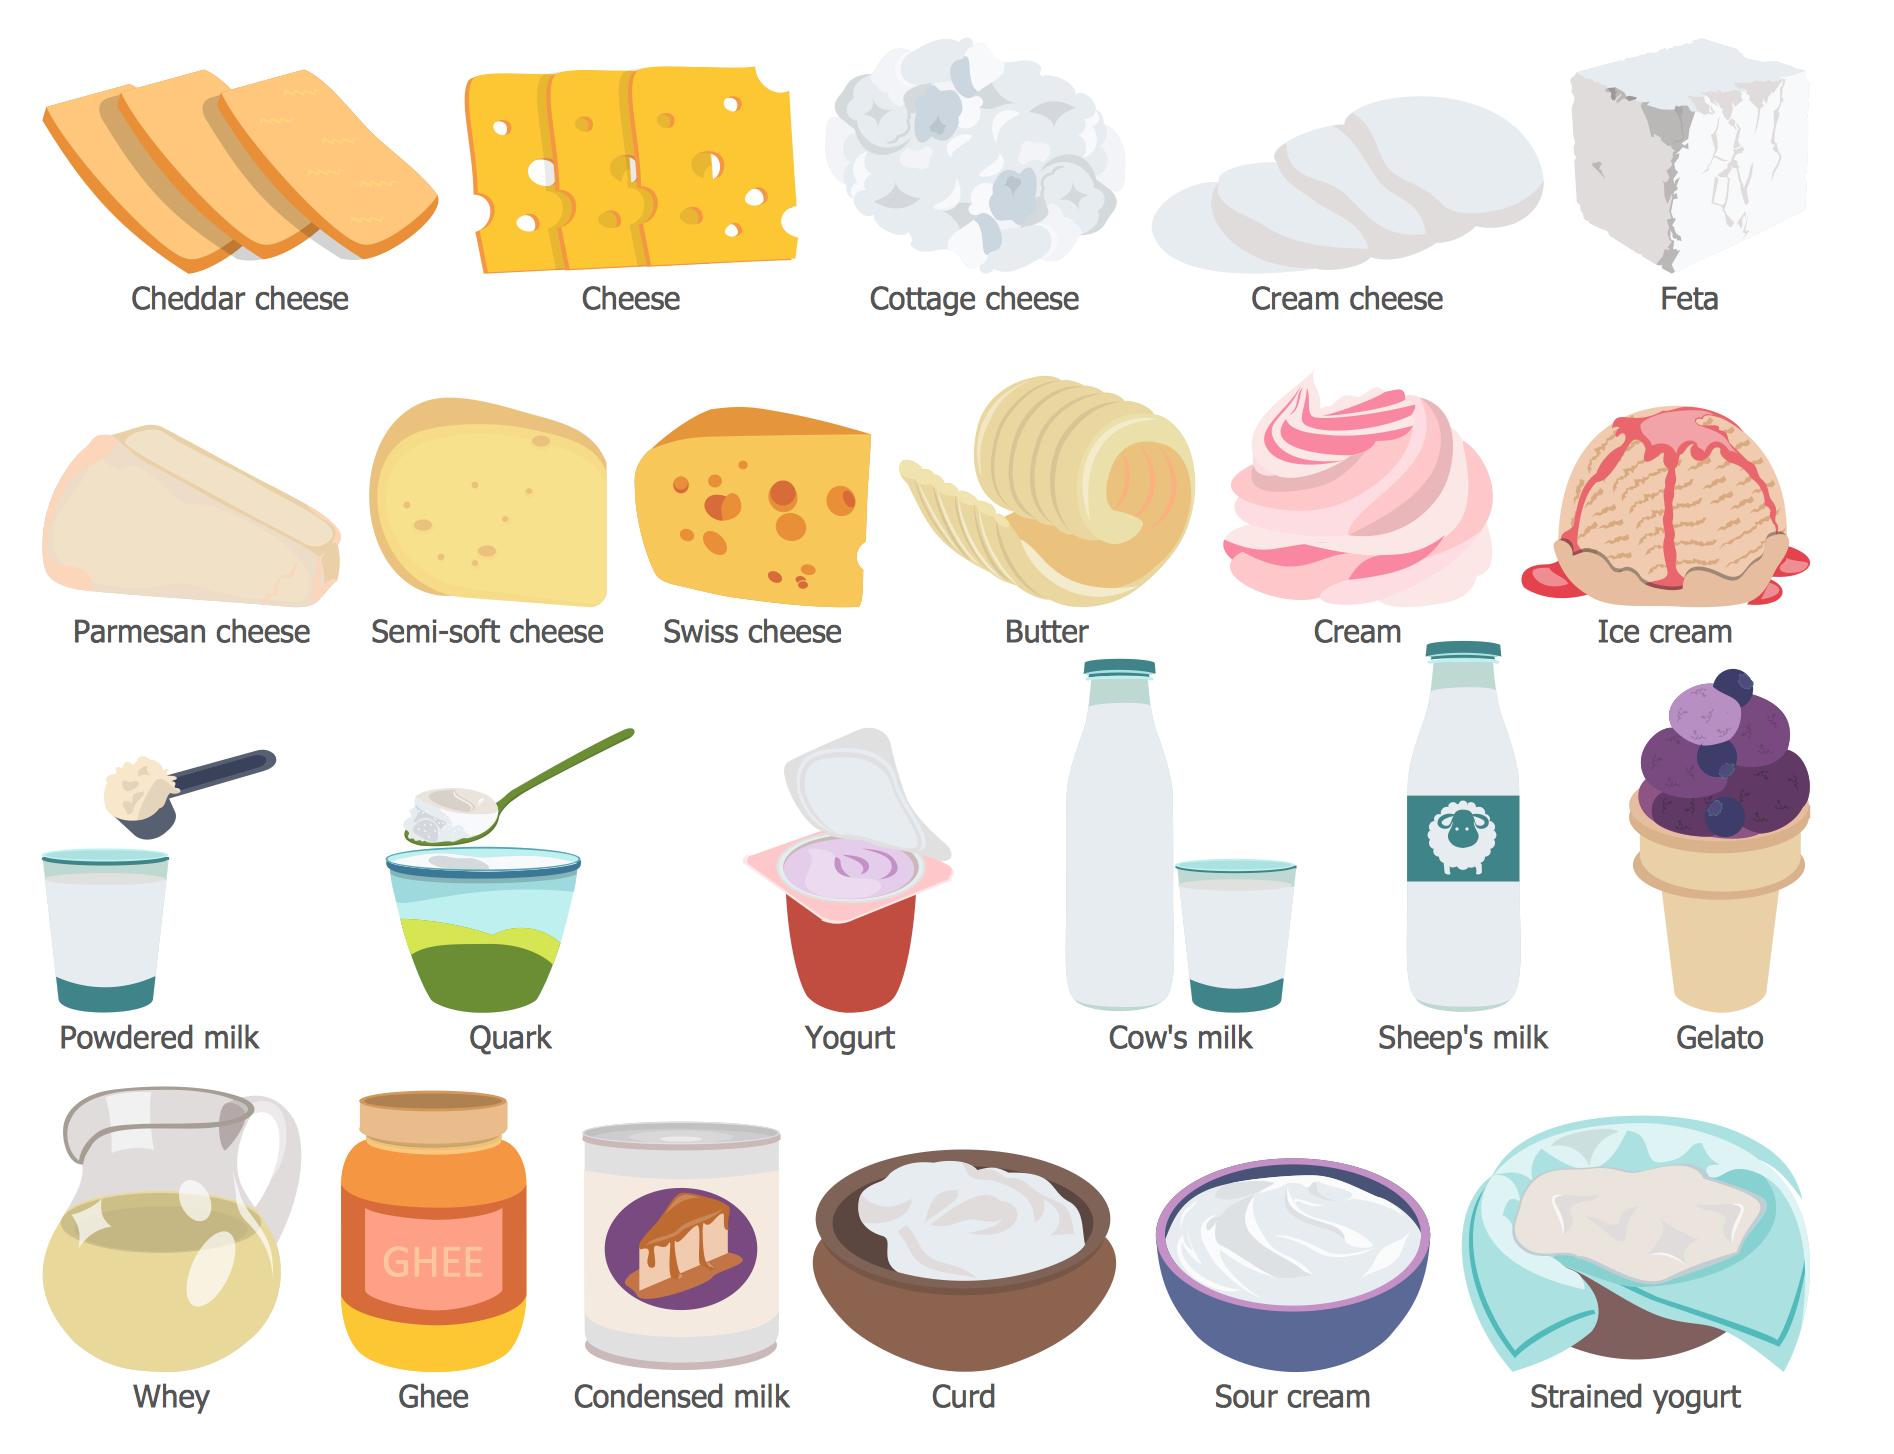 dairy foods examples milk health example healthy clipart grain english vocabulary items conceptdraw elements drinks recipes esl guide solution beverage